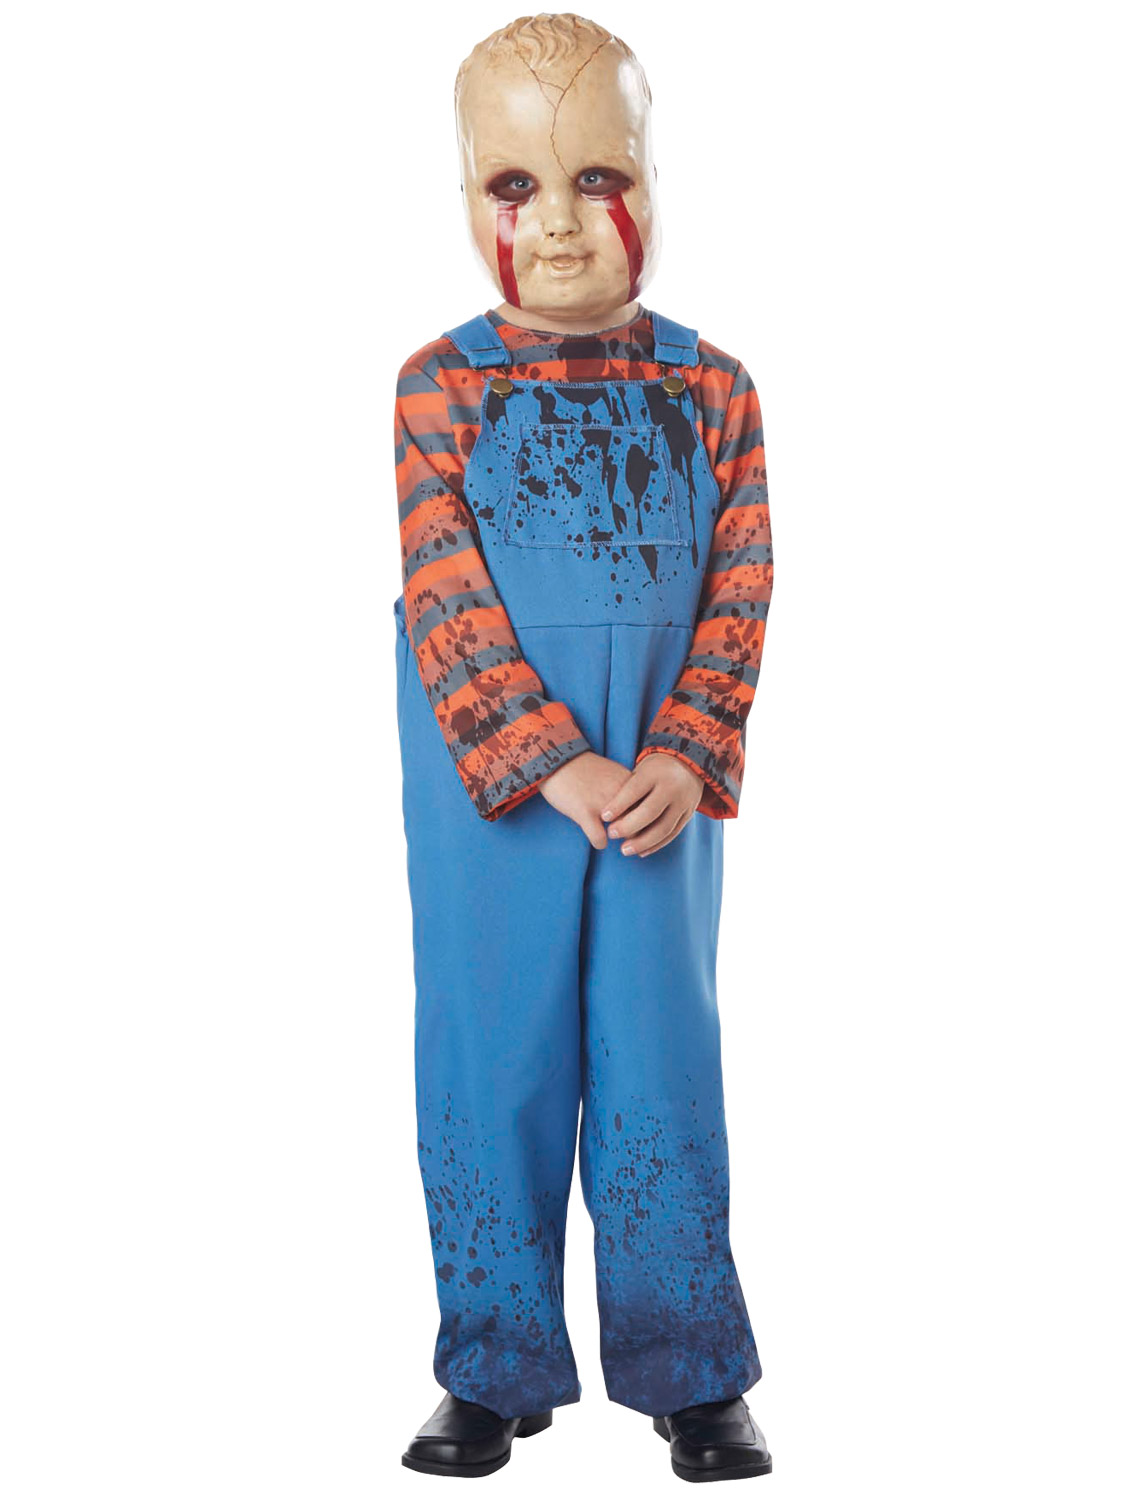 Halloween Costume 303.Details About Boys Cereal Killer Costume Child Chucky Halloween Fancy Dress Kids Serial Outfit